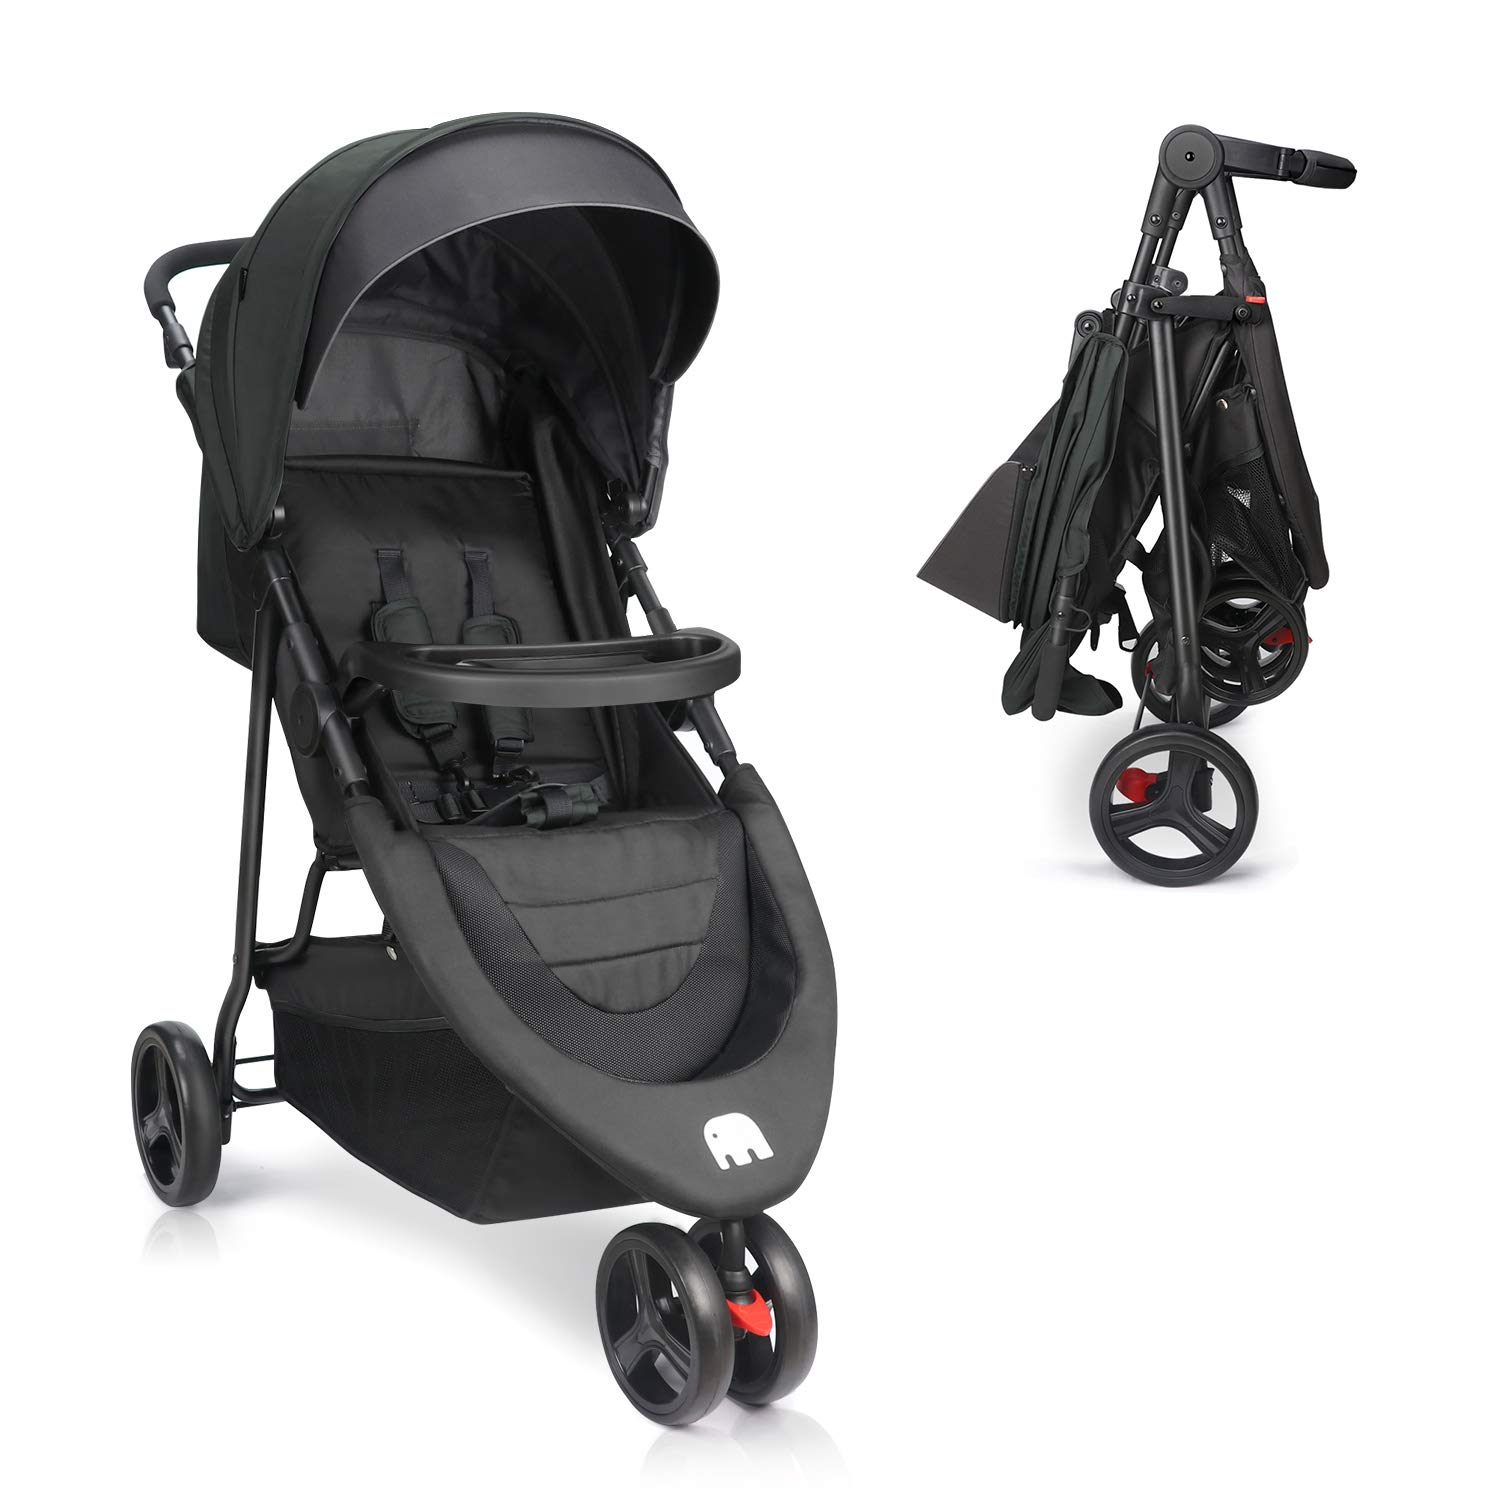 Baby Stroller, Meinkind Jogging Stroller Foldable Lightweight Portable Stroller 3 Wheels Baby Jogger Stroller with Canopy, 5-Point Safety Belt, Storage Basket, Snack Tray, Up to 44lbs Toddler